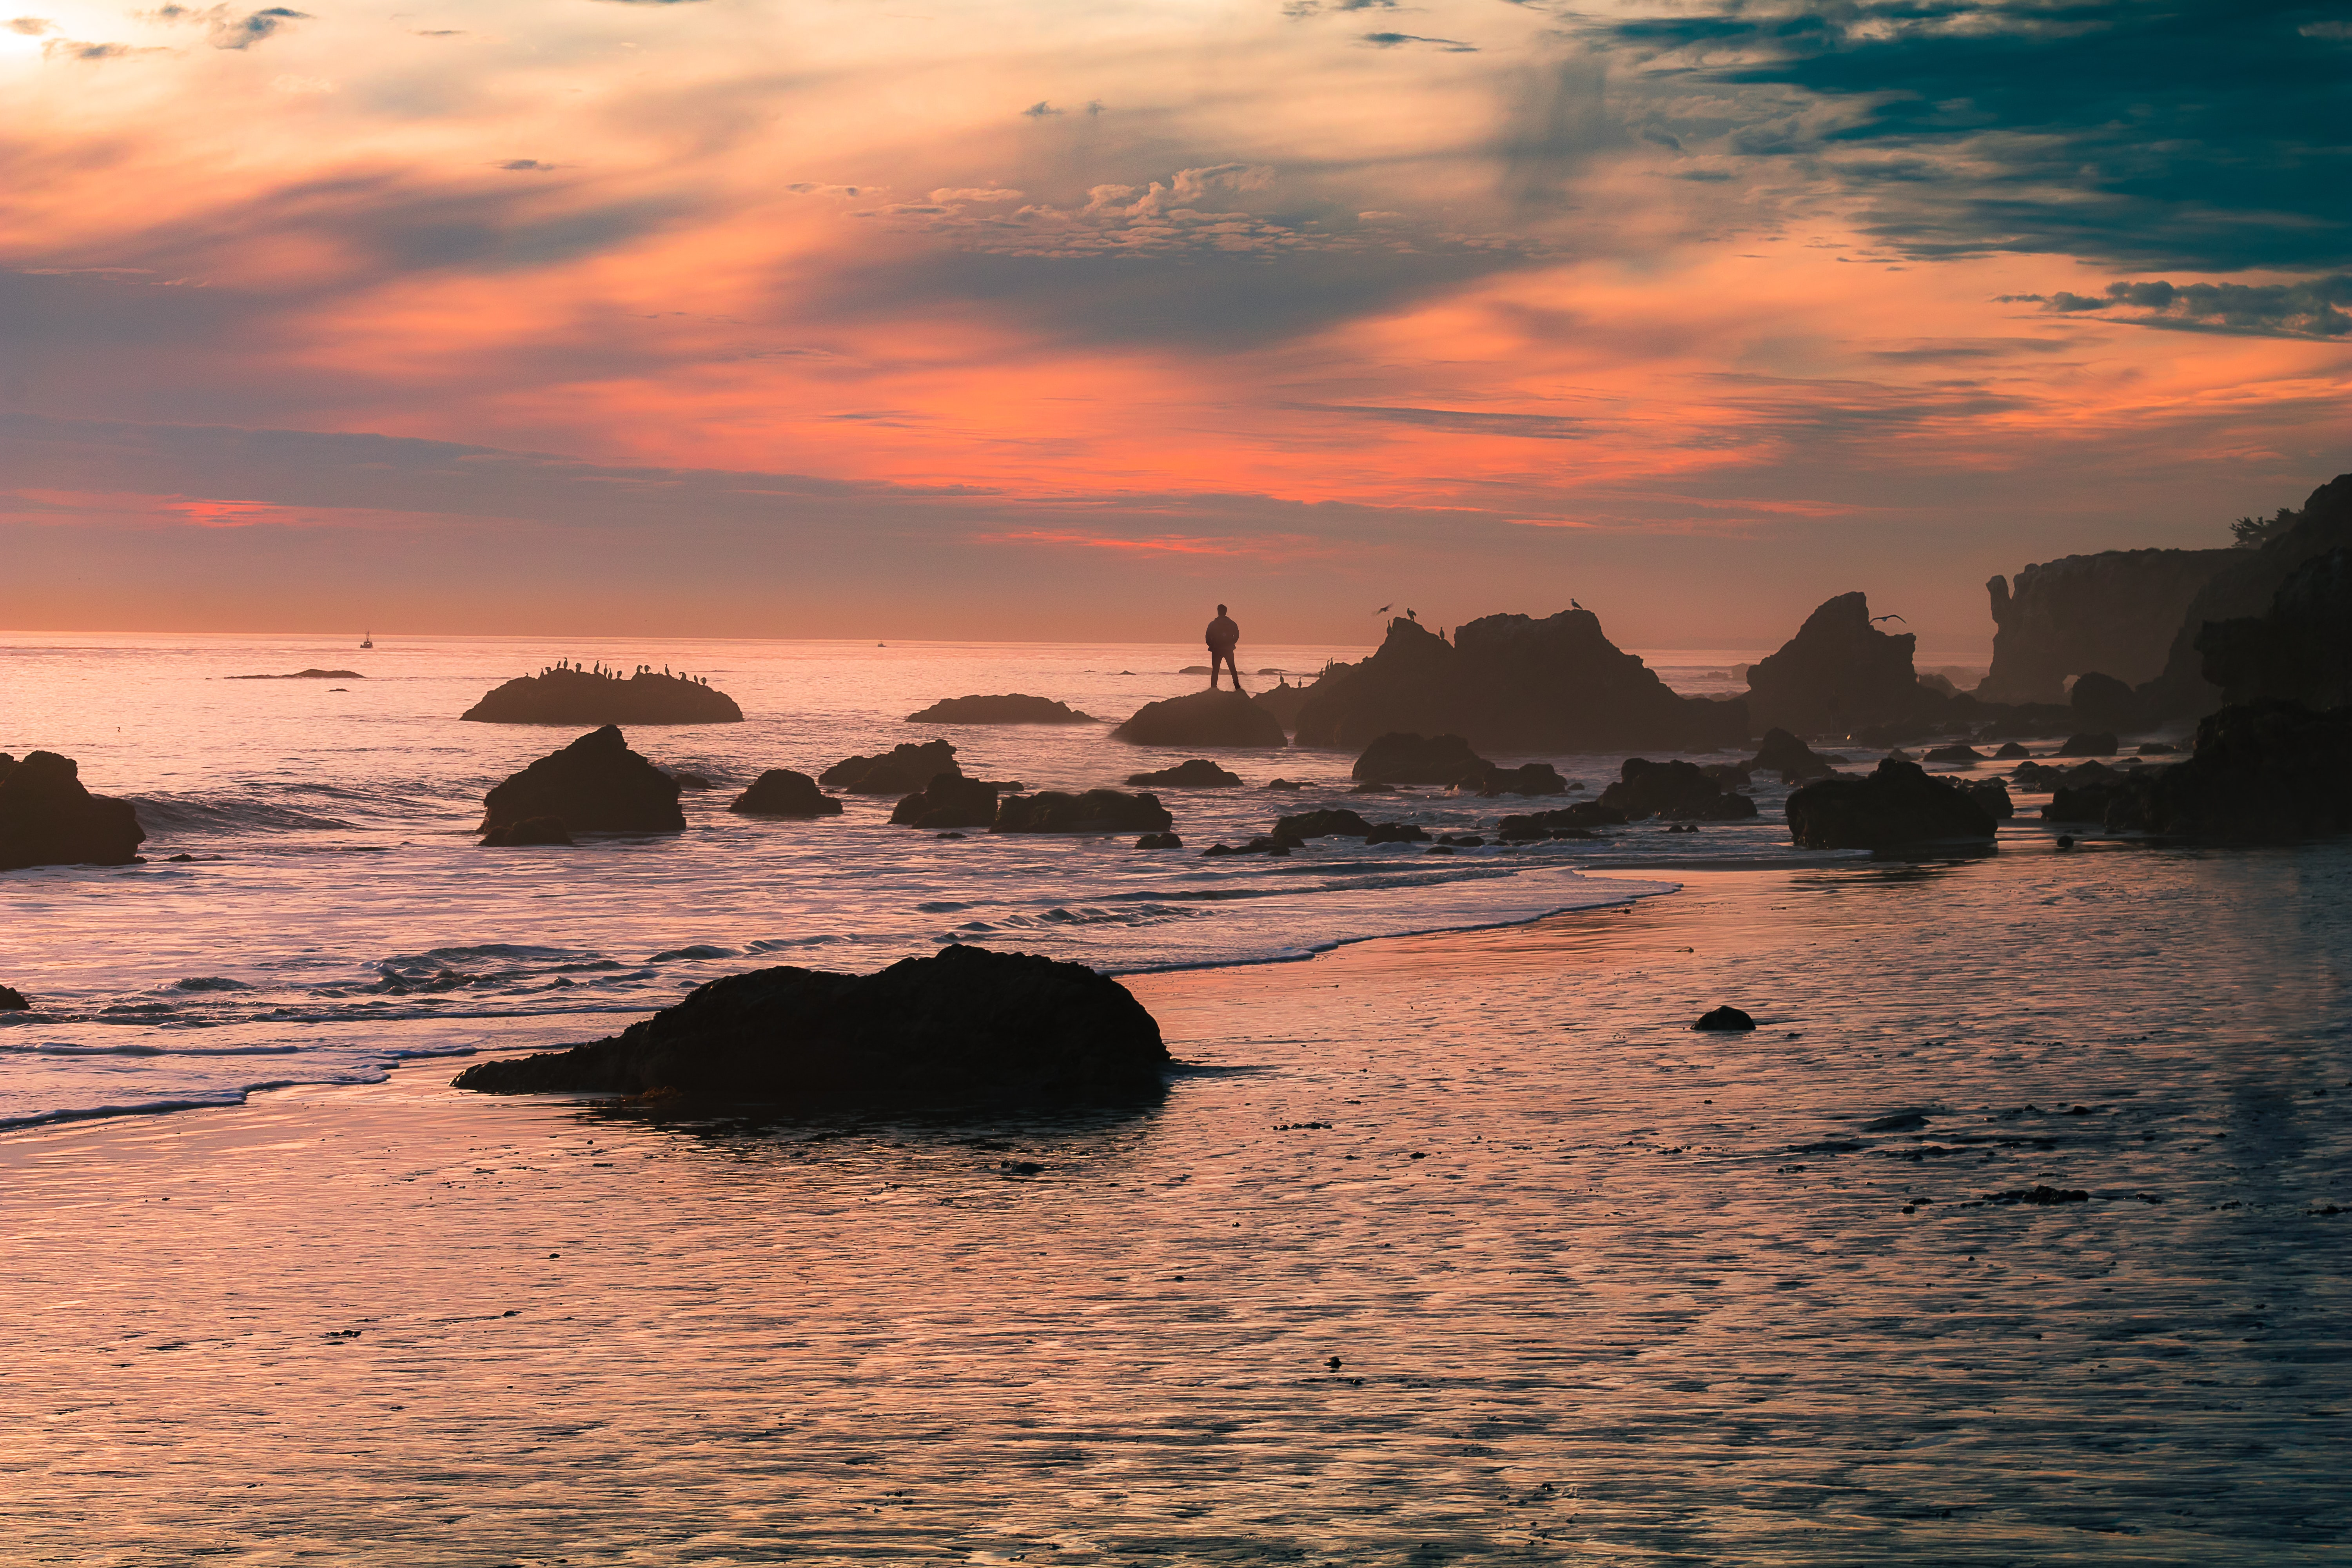 A pastel sunset covers the shores of El Matador State Beach as a man stands over the rocks